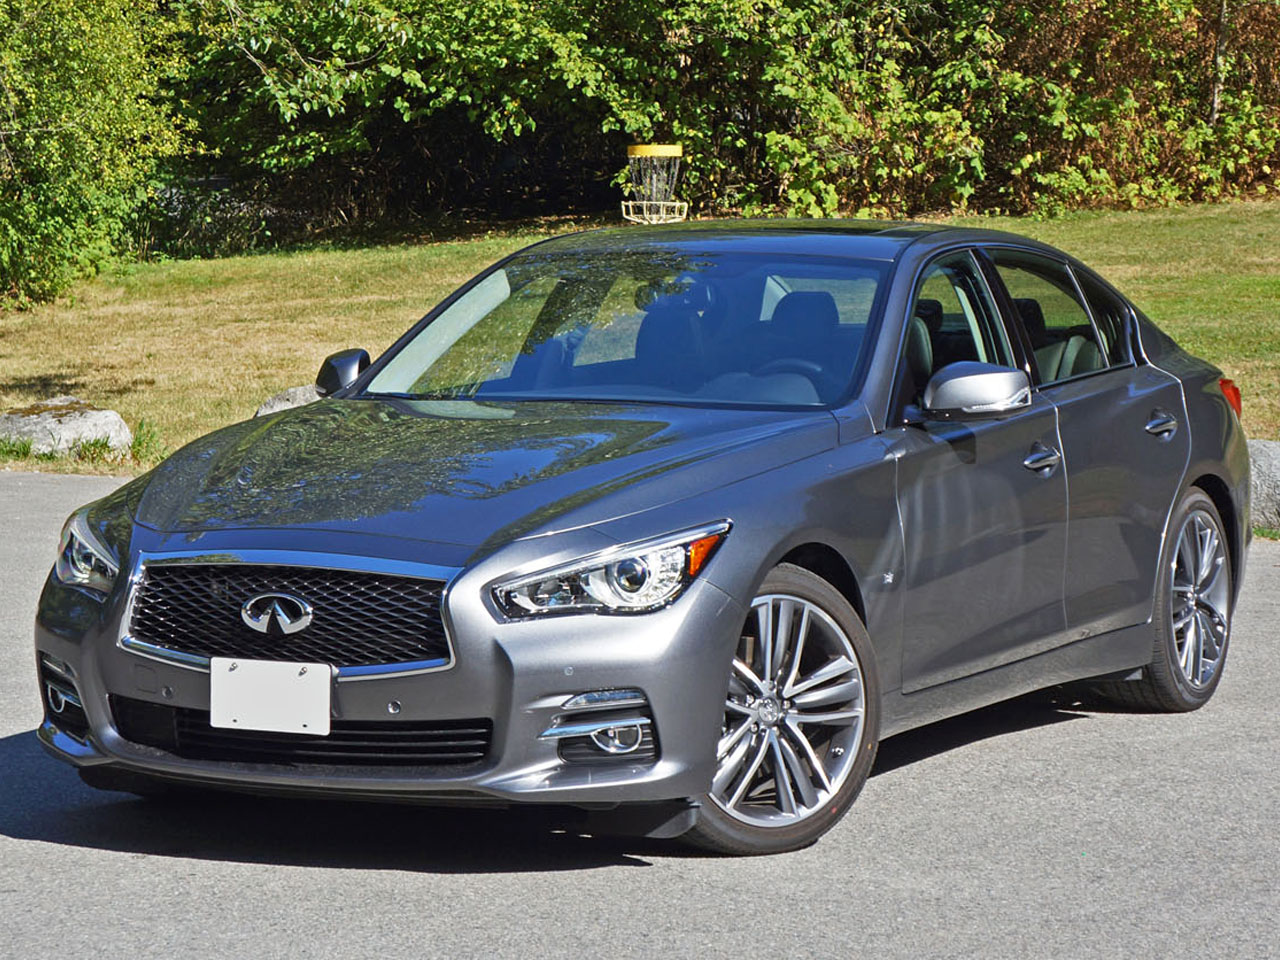 Infiniti Q AWD Limited Edition Road Test Review - Infiniti q50 invoice price